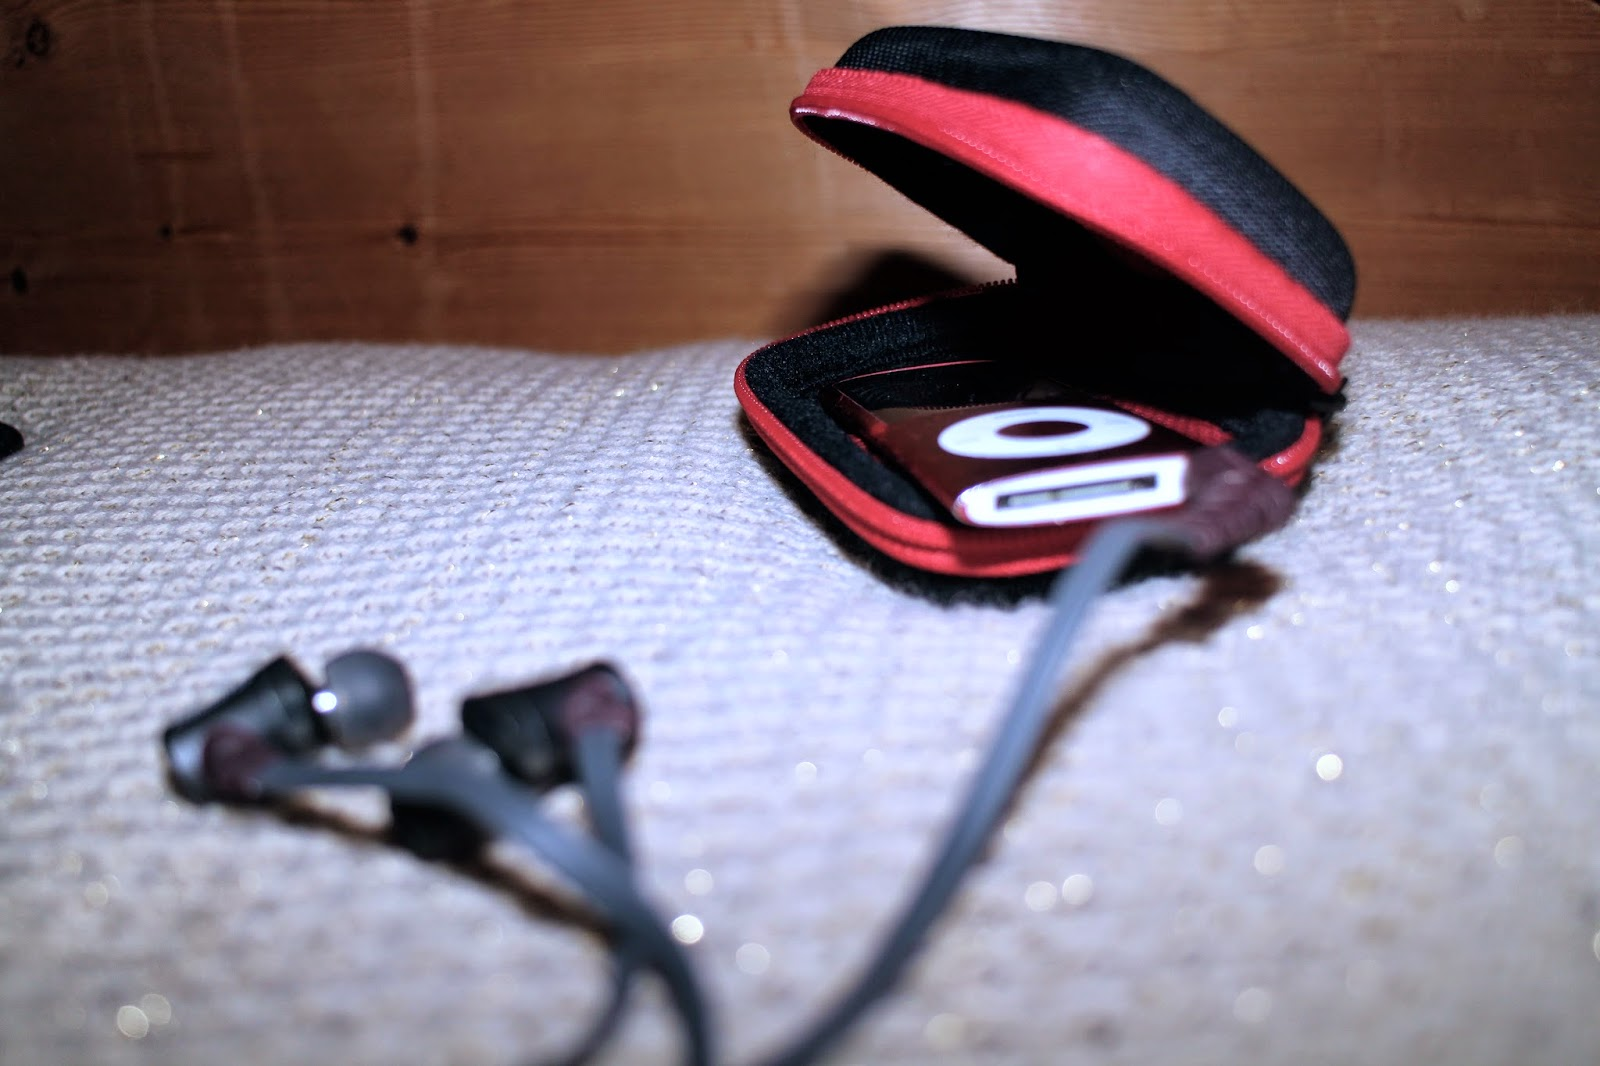 An iPod Nano and Brainwavs headphones